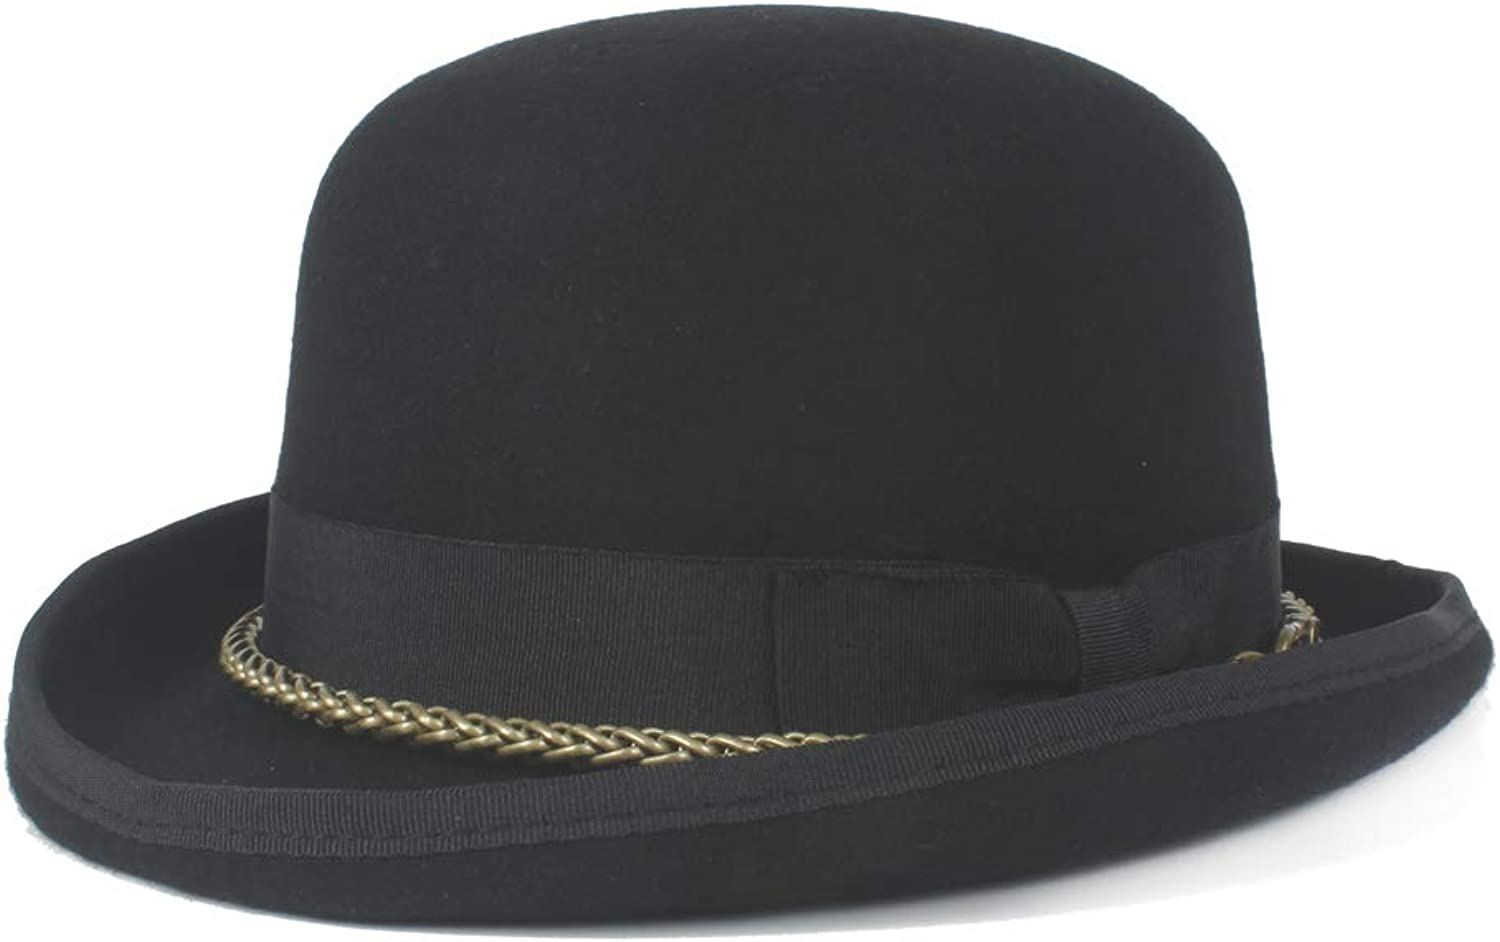 100% Wool Wome Men Unisex Headwear Steampunk Bowler Hat Metal Chain Dome Topper Luxury Fedora Hat Fashion and Awesome